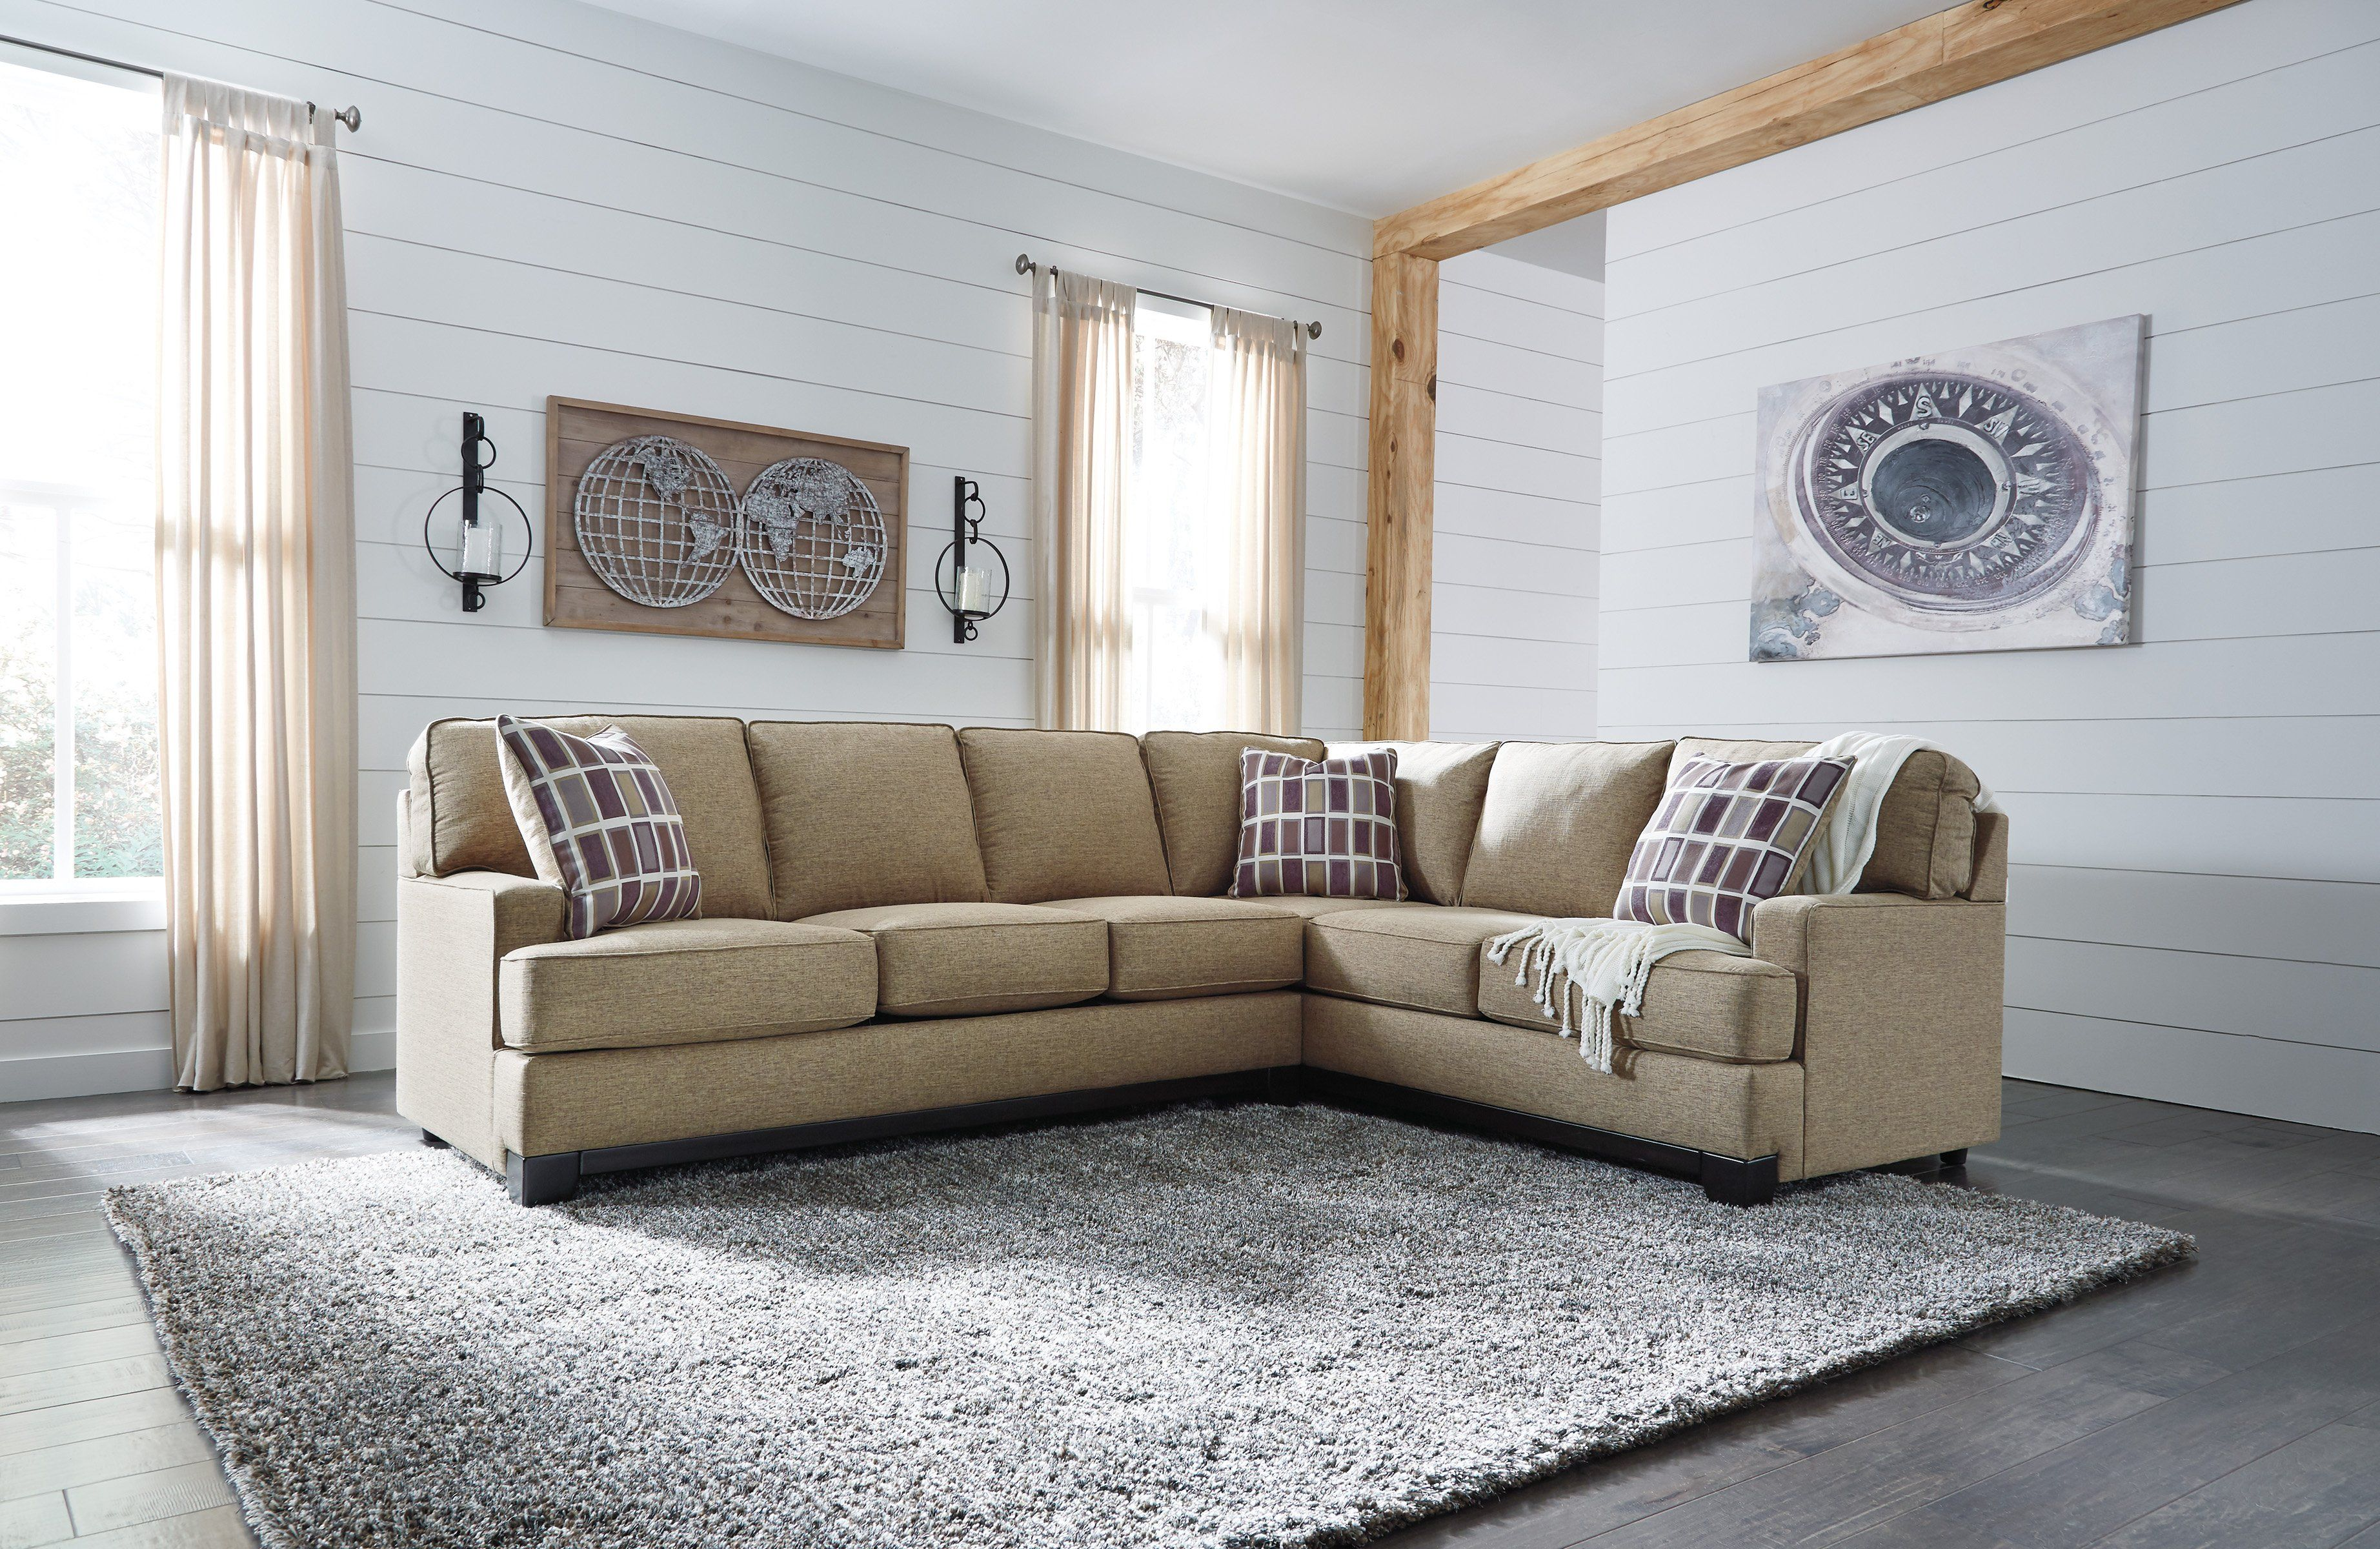 Signature Design By Ashley Larkhaven Amber 2 Pieces Sectional Sofa Furniture Sectional Sofa 2 Piece Sectional Sofa